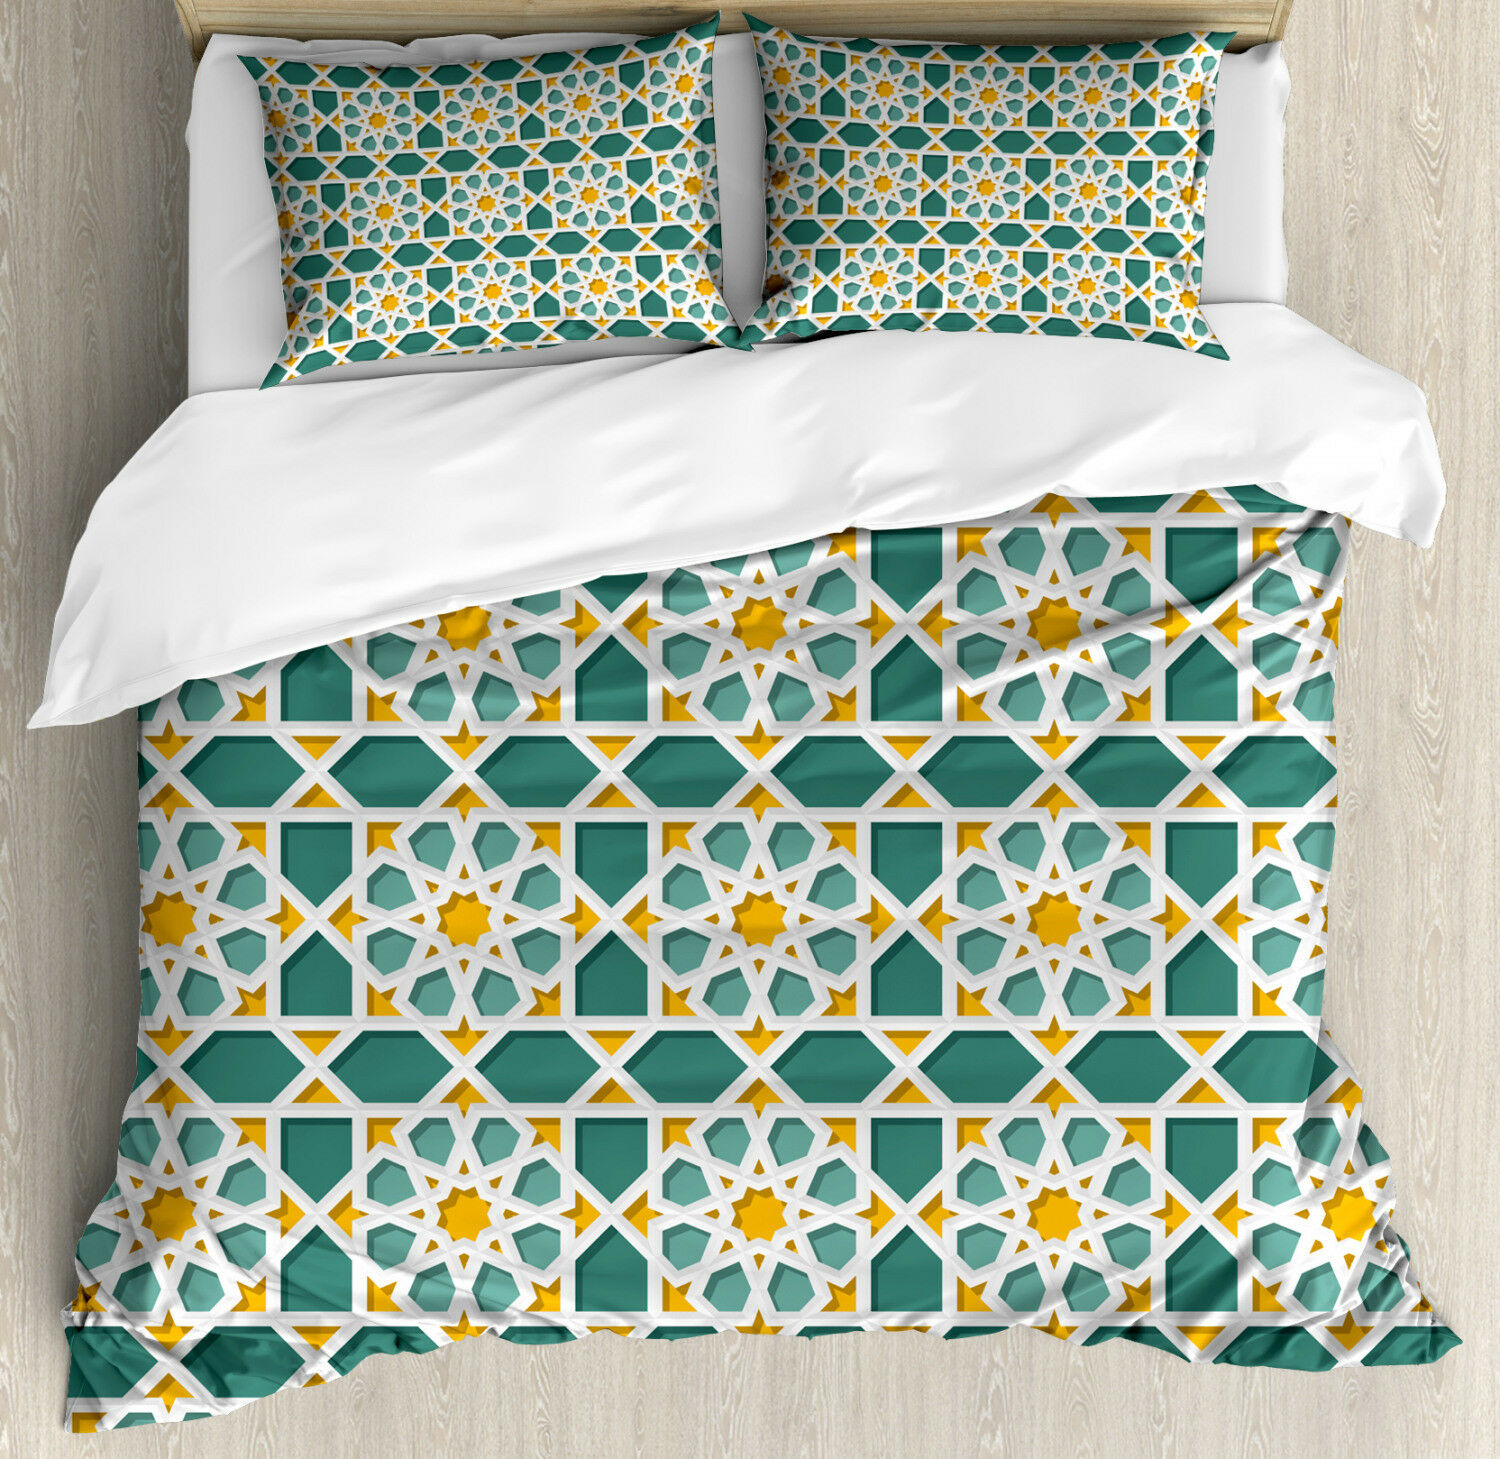 Teal Duvet Cover Set with Pillow Shams Mgoldccan Star Ornament Print